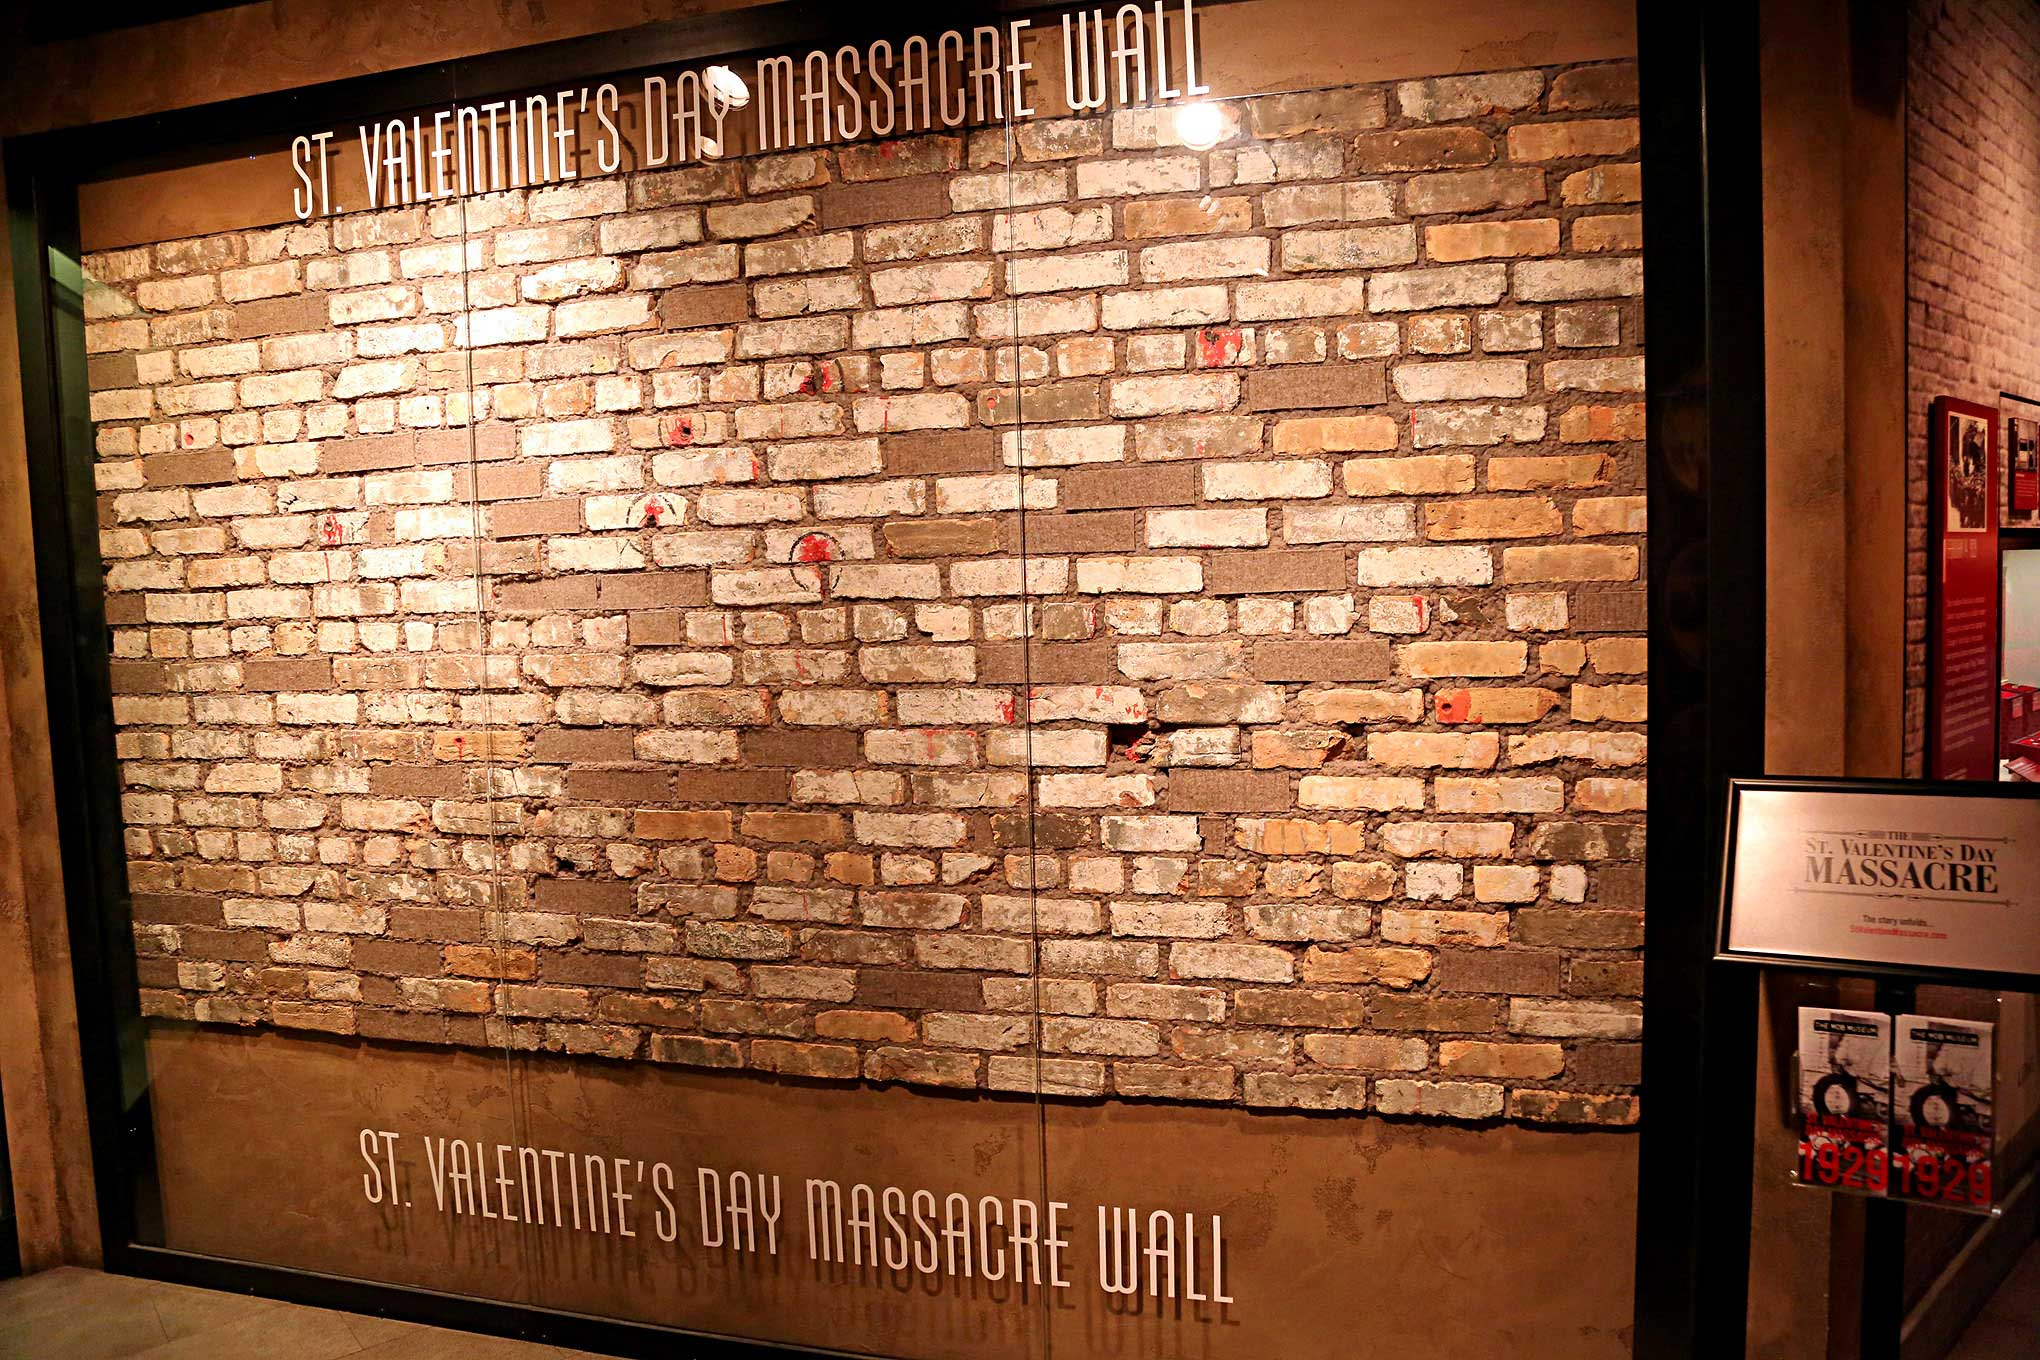 Mob Museum St Valentine Day Massacre Wall Lowrider